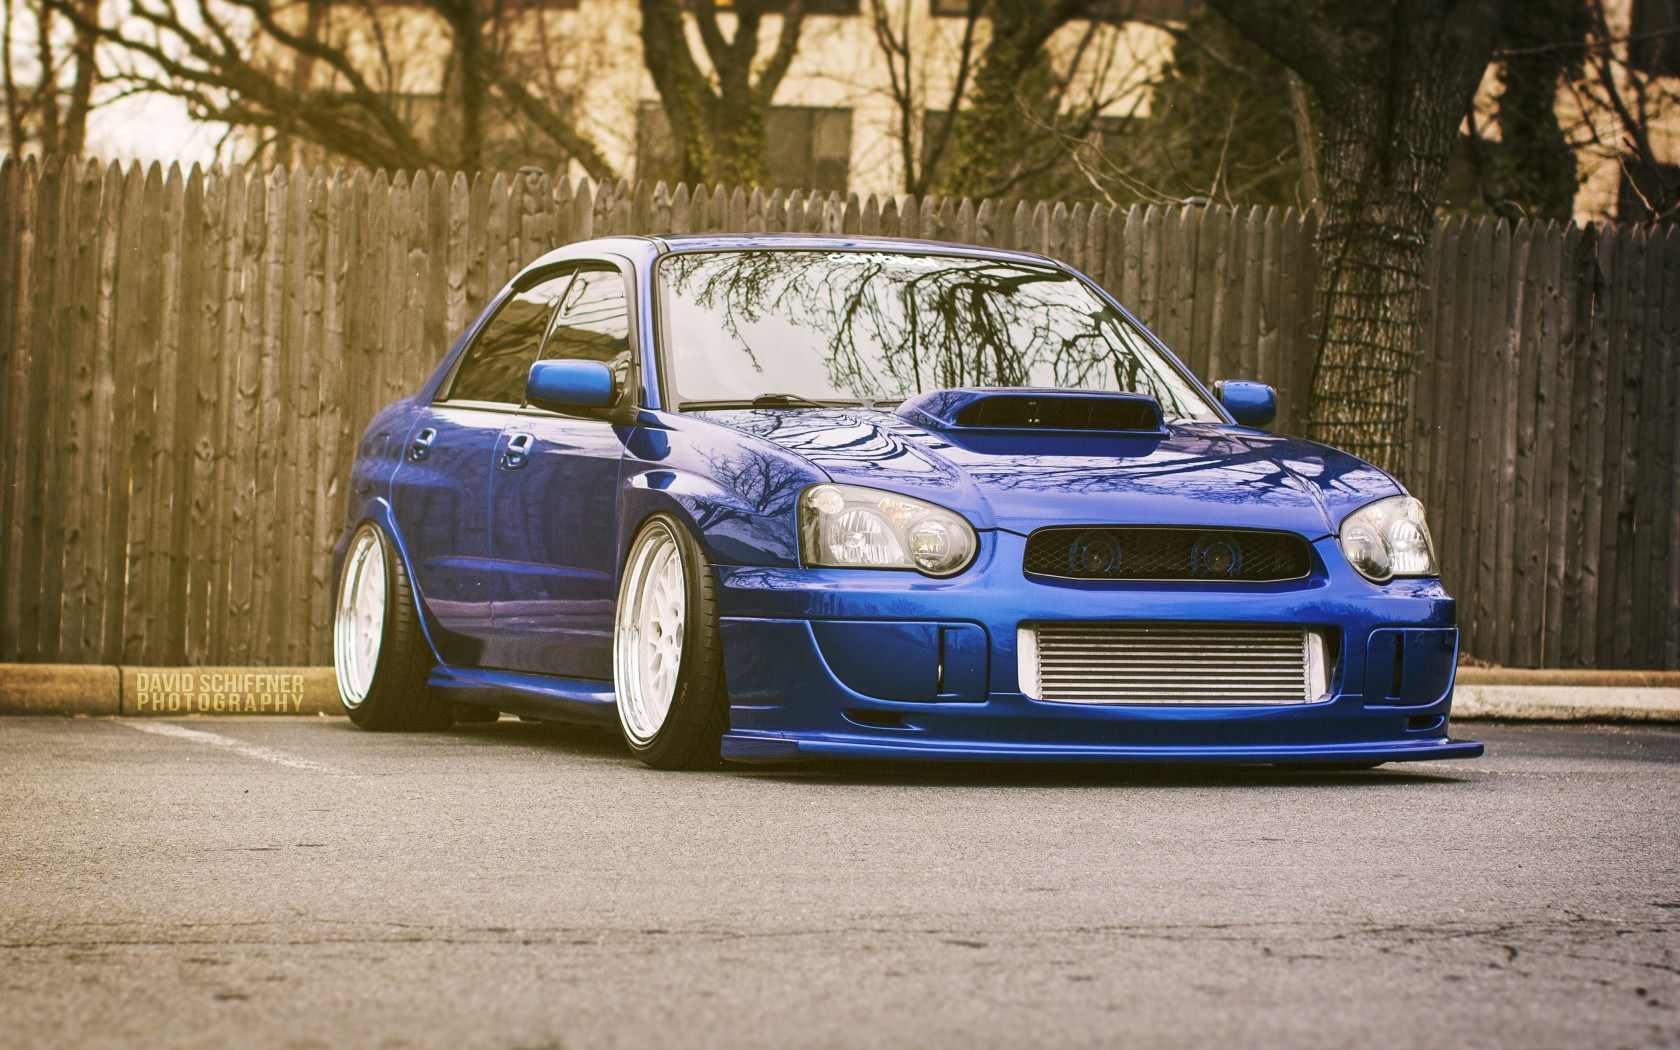 subaru impreza wrx sti blue car wallpaper 1680x1050 17921. Black Bedroom Furniture Sets. Home Design Ideas